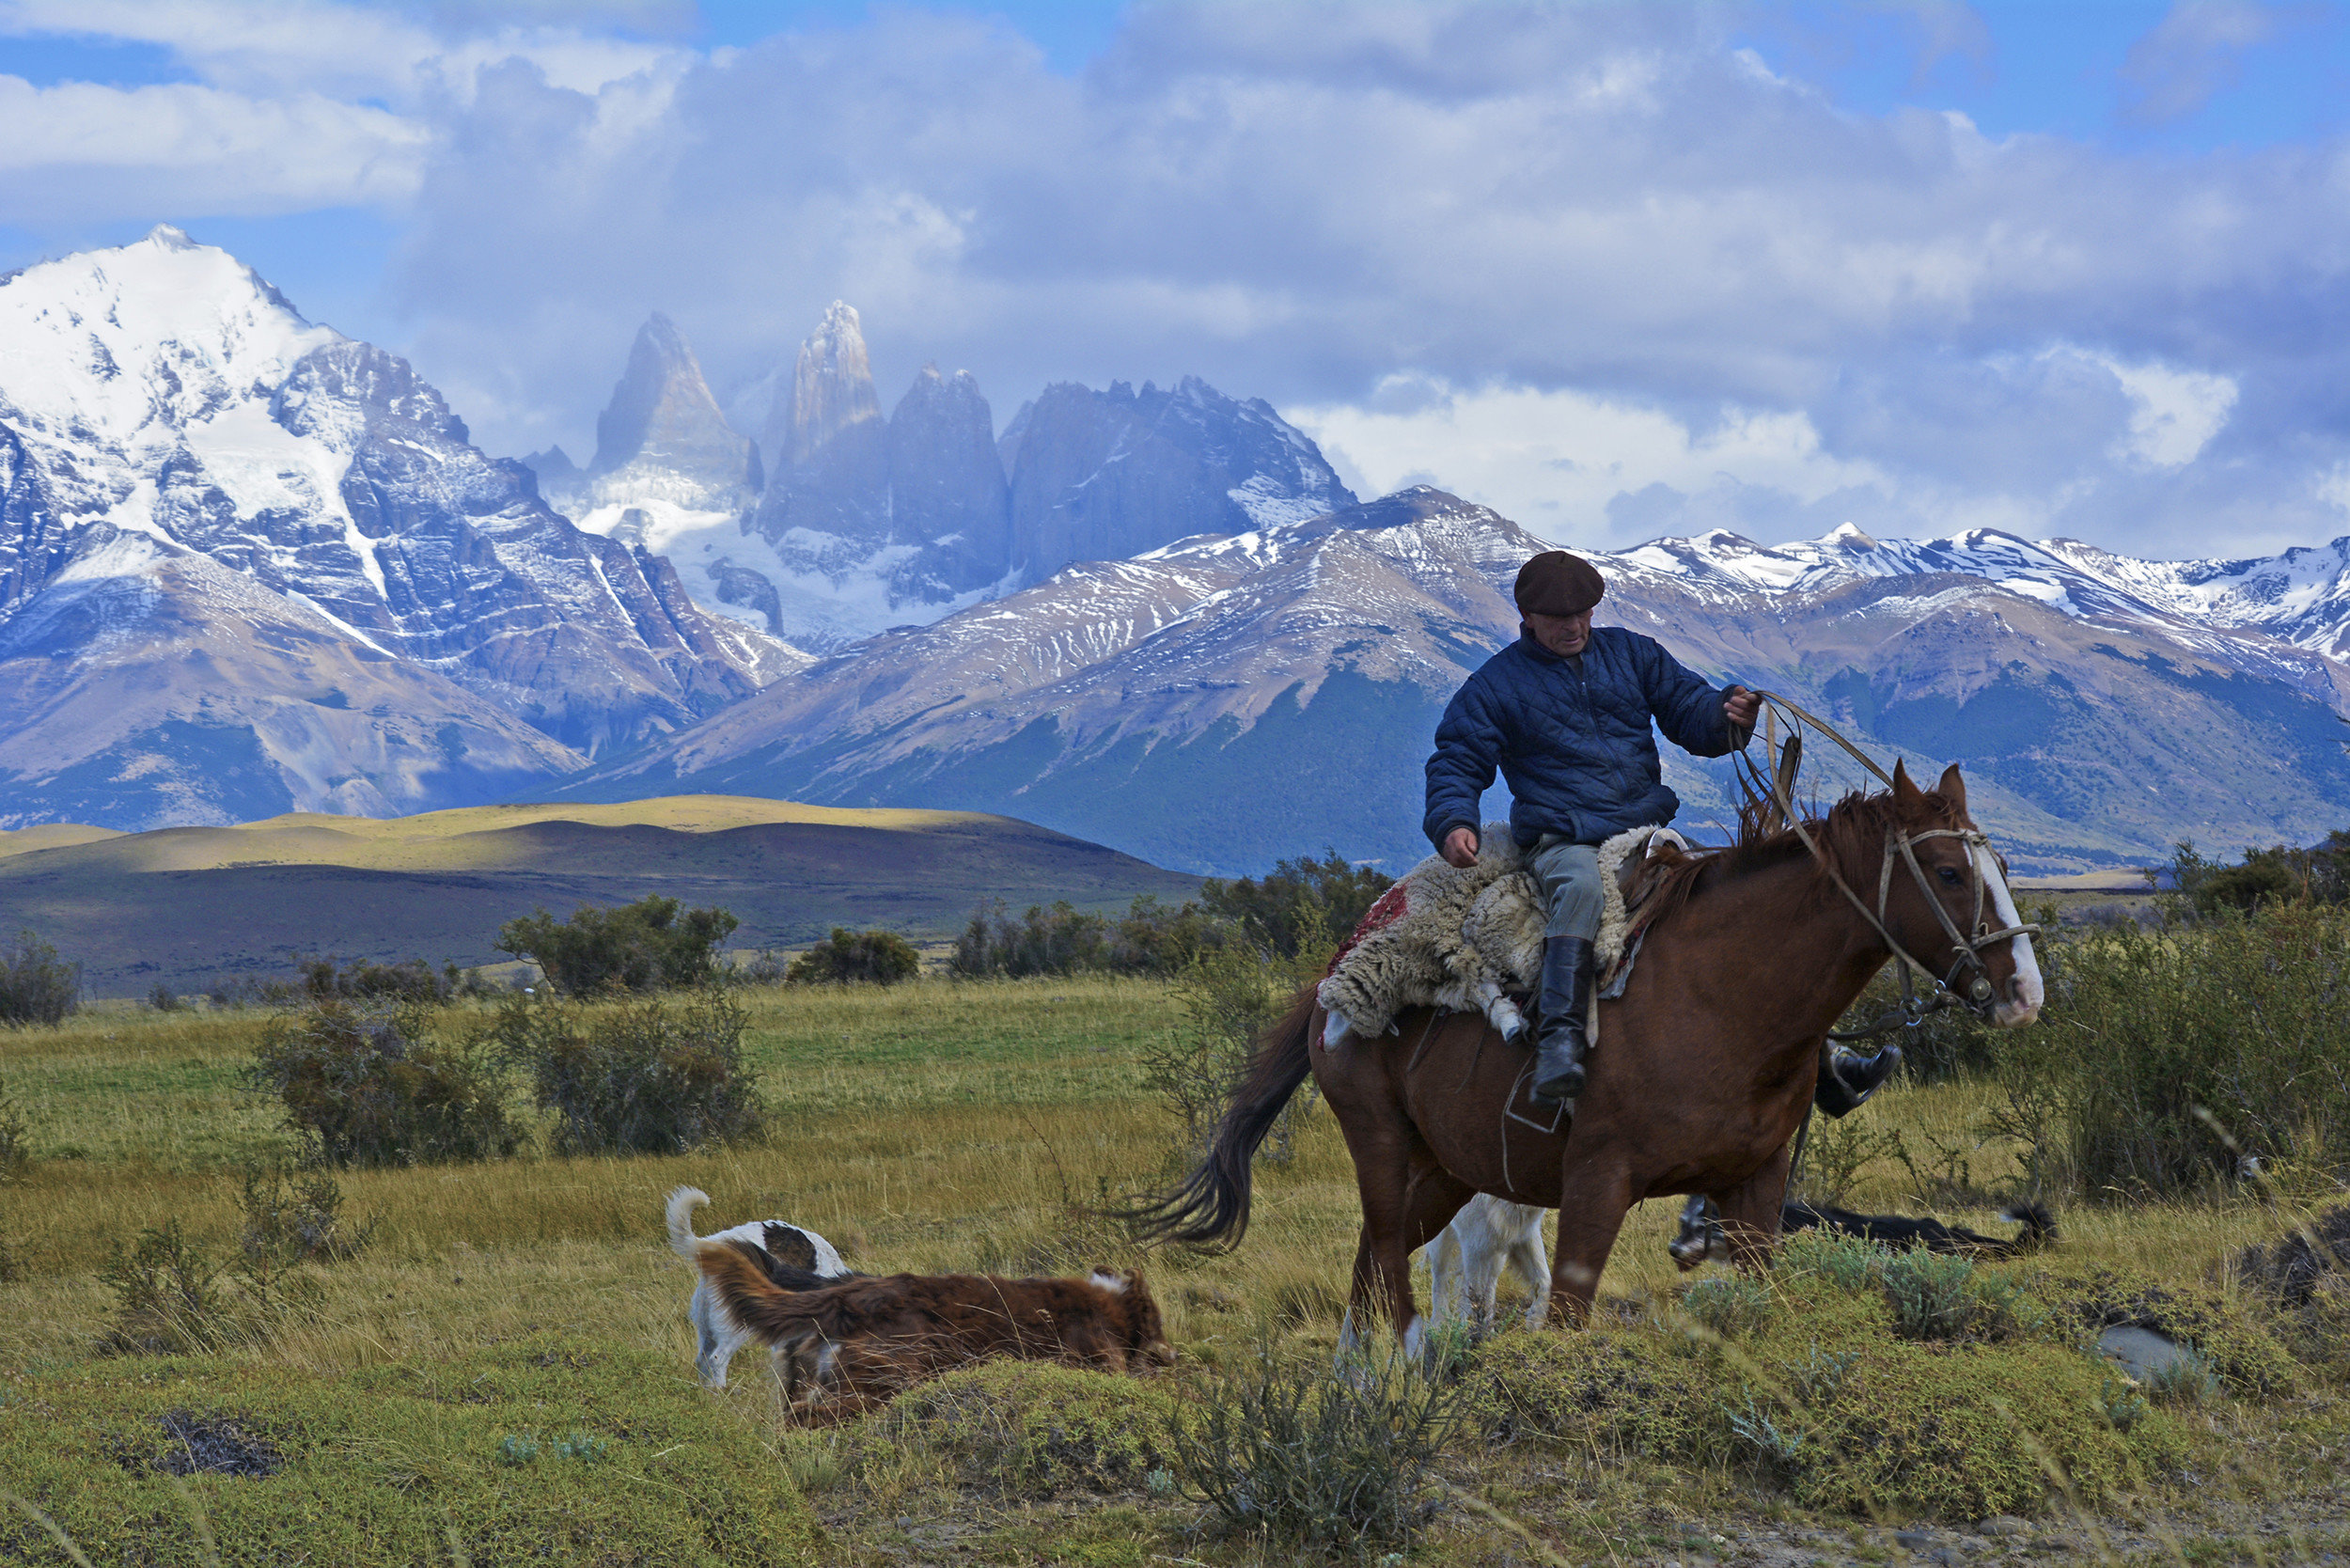 Jetsetter Guides Packing Tips Travel Tips Trip Ideas grass sky mountain outdoor mountainous landforms field wilderness landform mountain range pasture ecosystem grassland landscape meadow plateau alps mammal valley Adventure backpacking trail riding distance highland